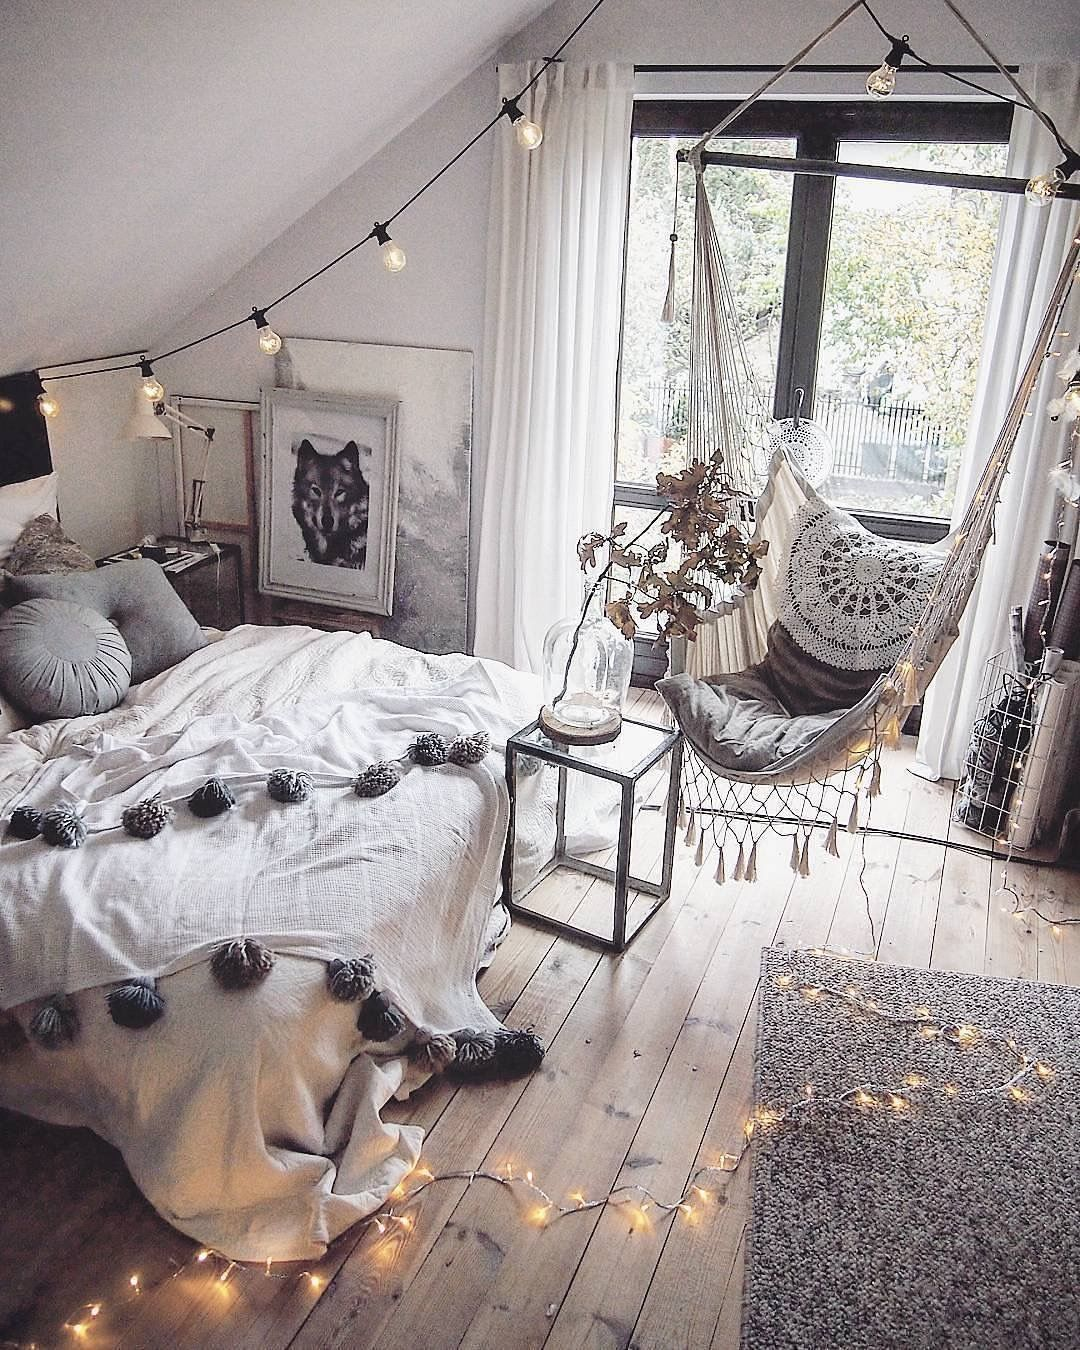 Common To Both Scandinavian And Bohemian Styles 1 Lots Of